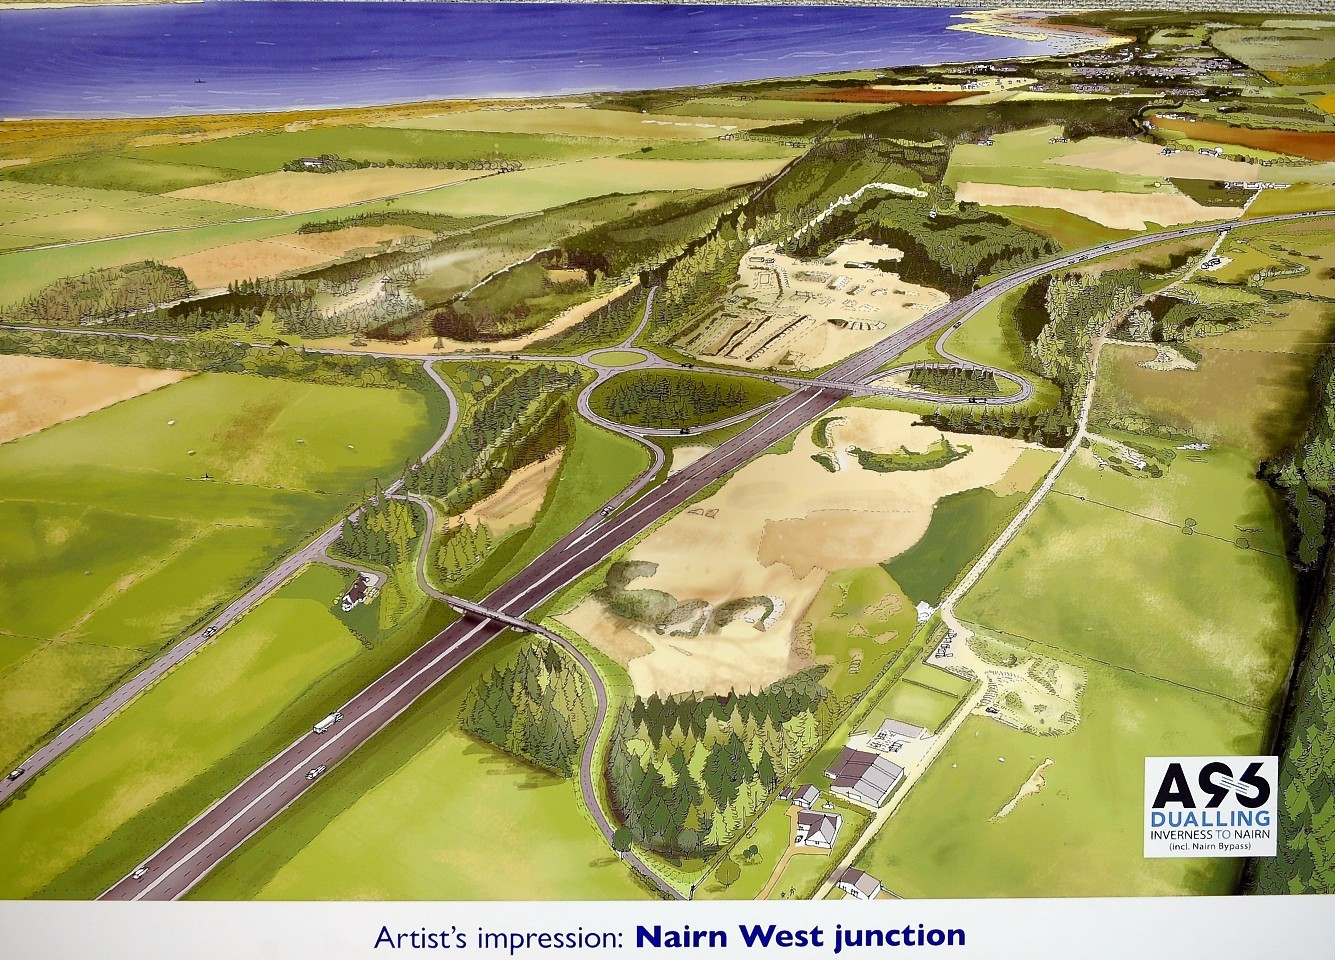 An artist's impression of a new junction west of Nairn as part of the bypass plans